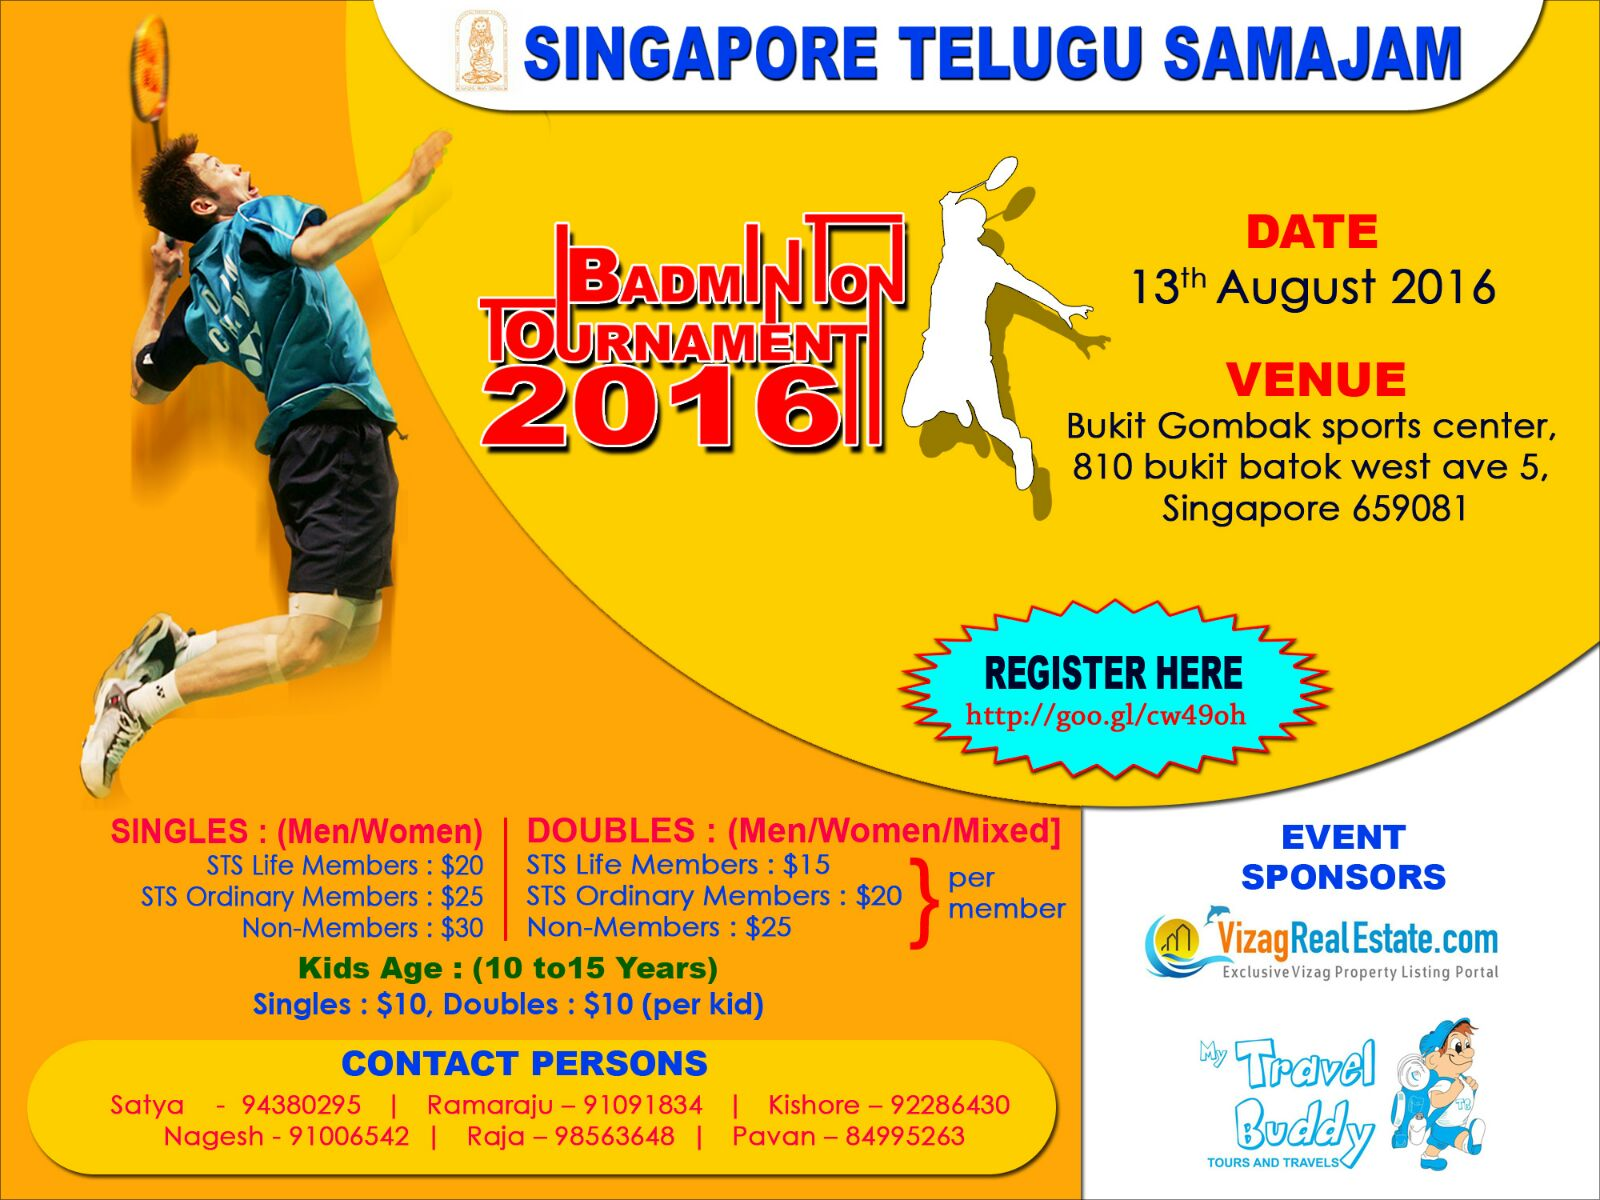 Singapore Telugu Samajam - Badminton Tournament 2016